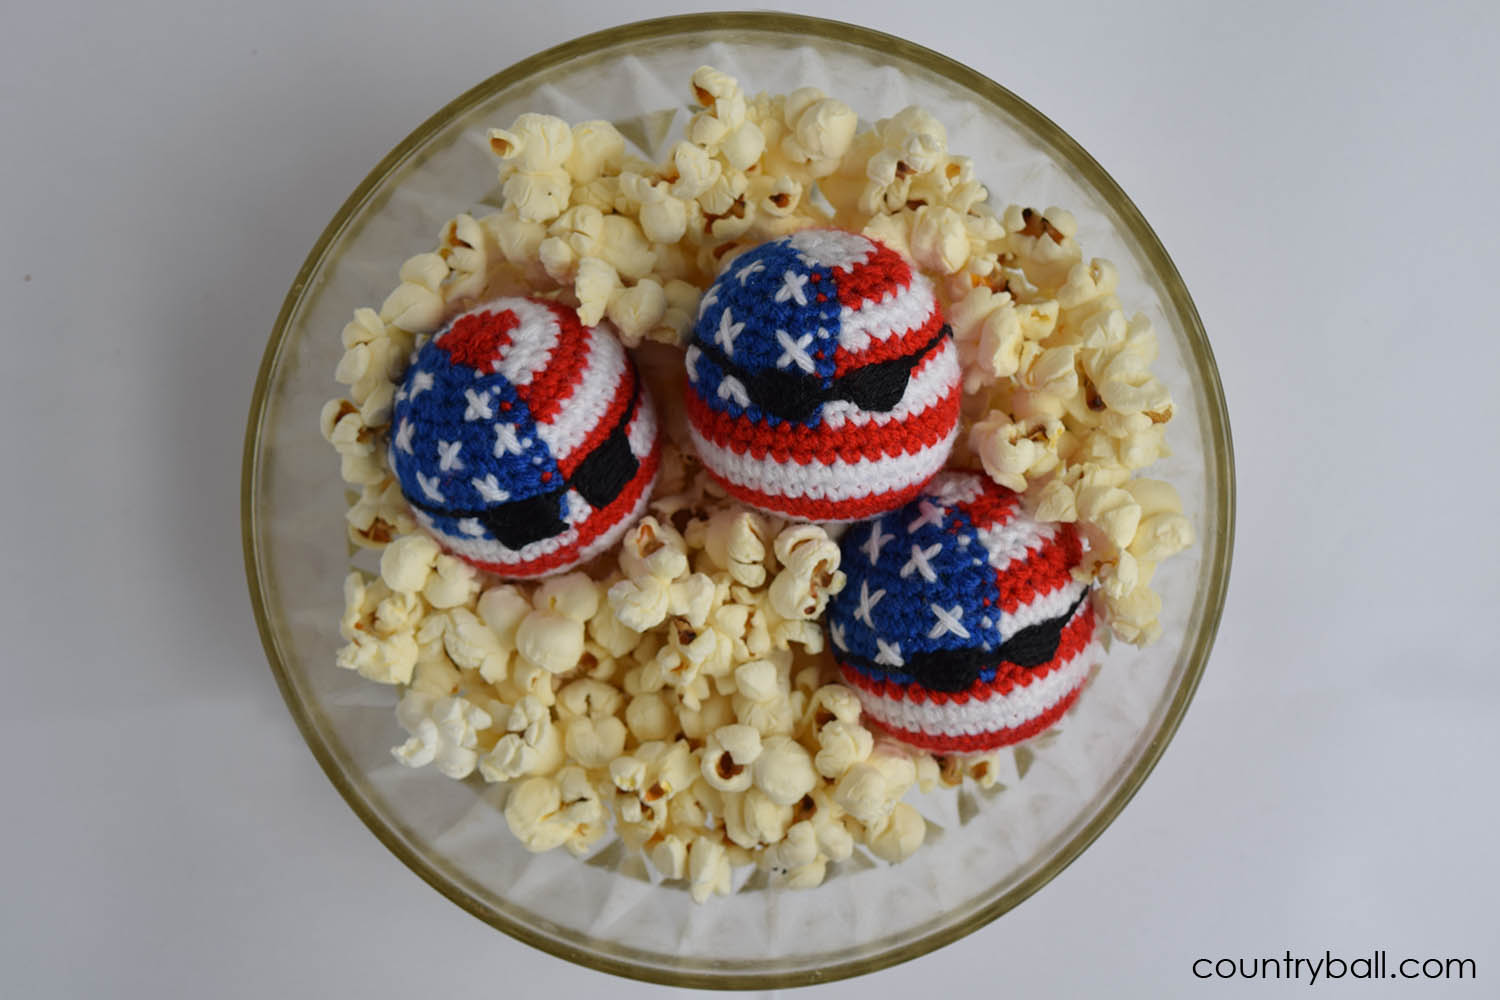 USABall Diving in a Cup of Popcorn